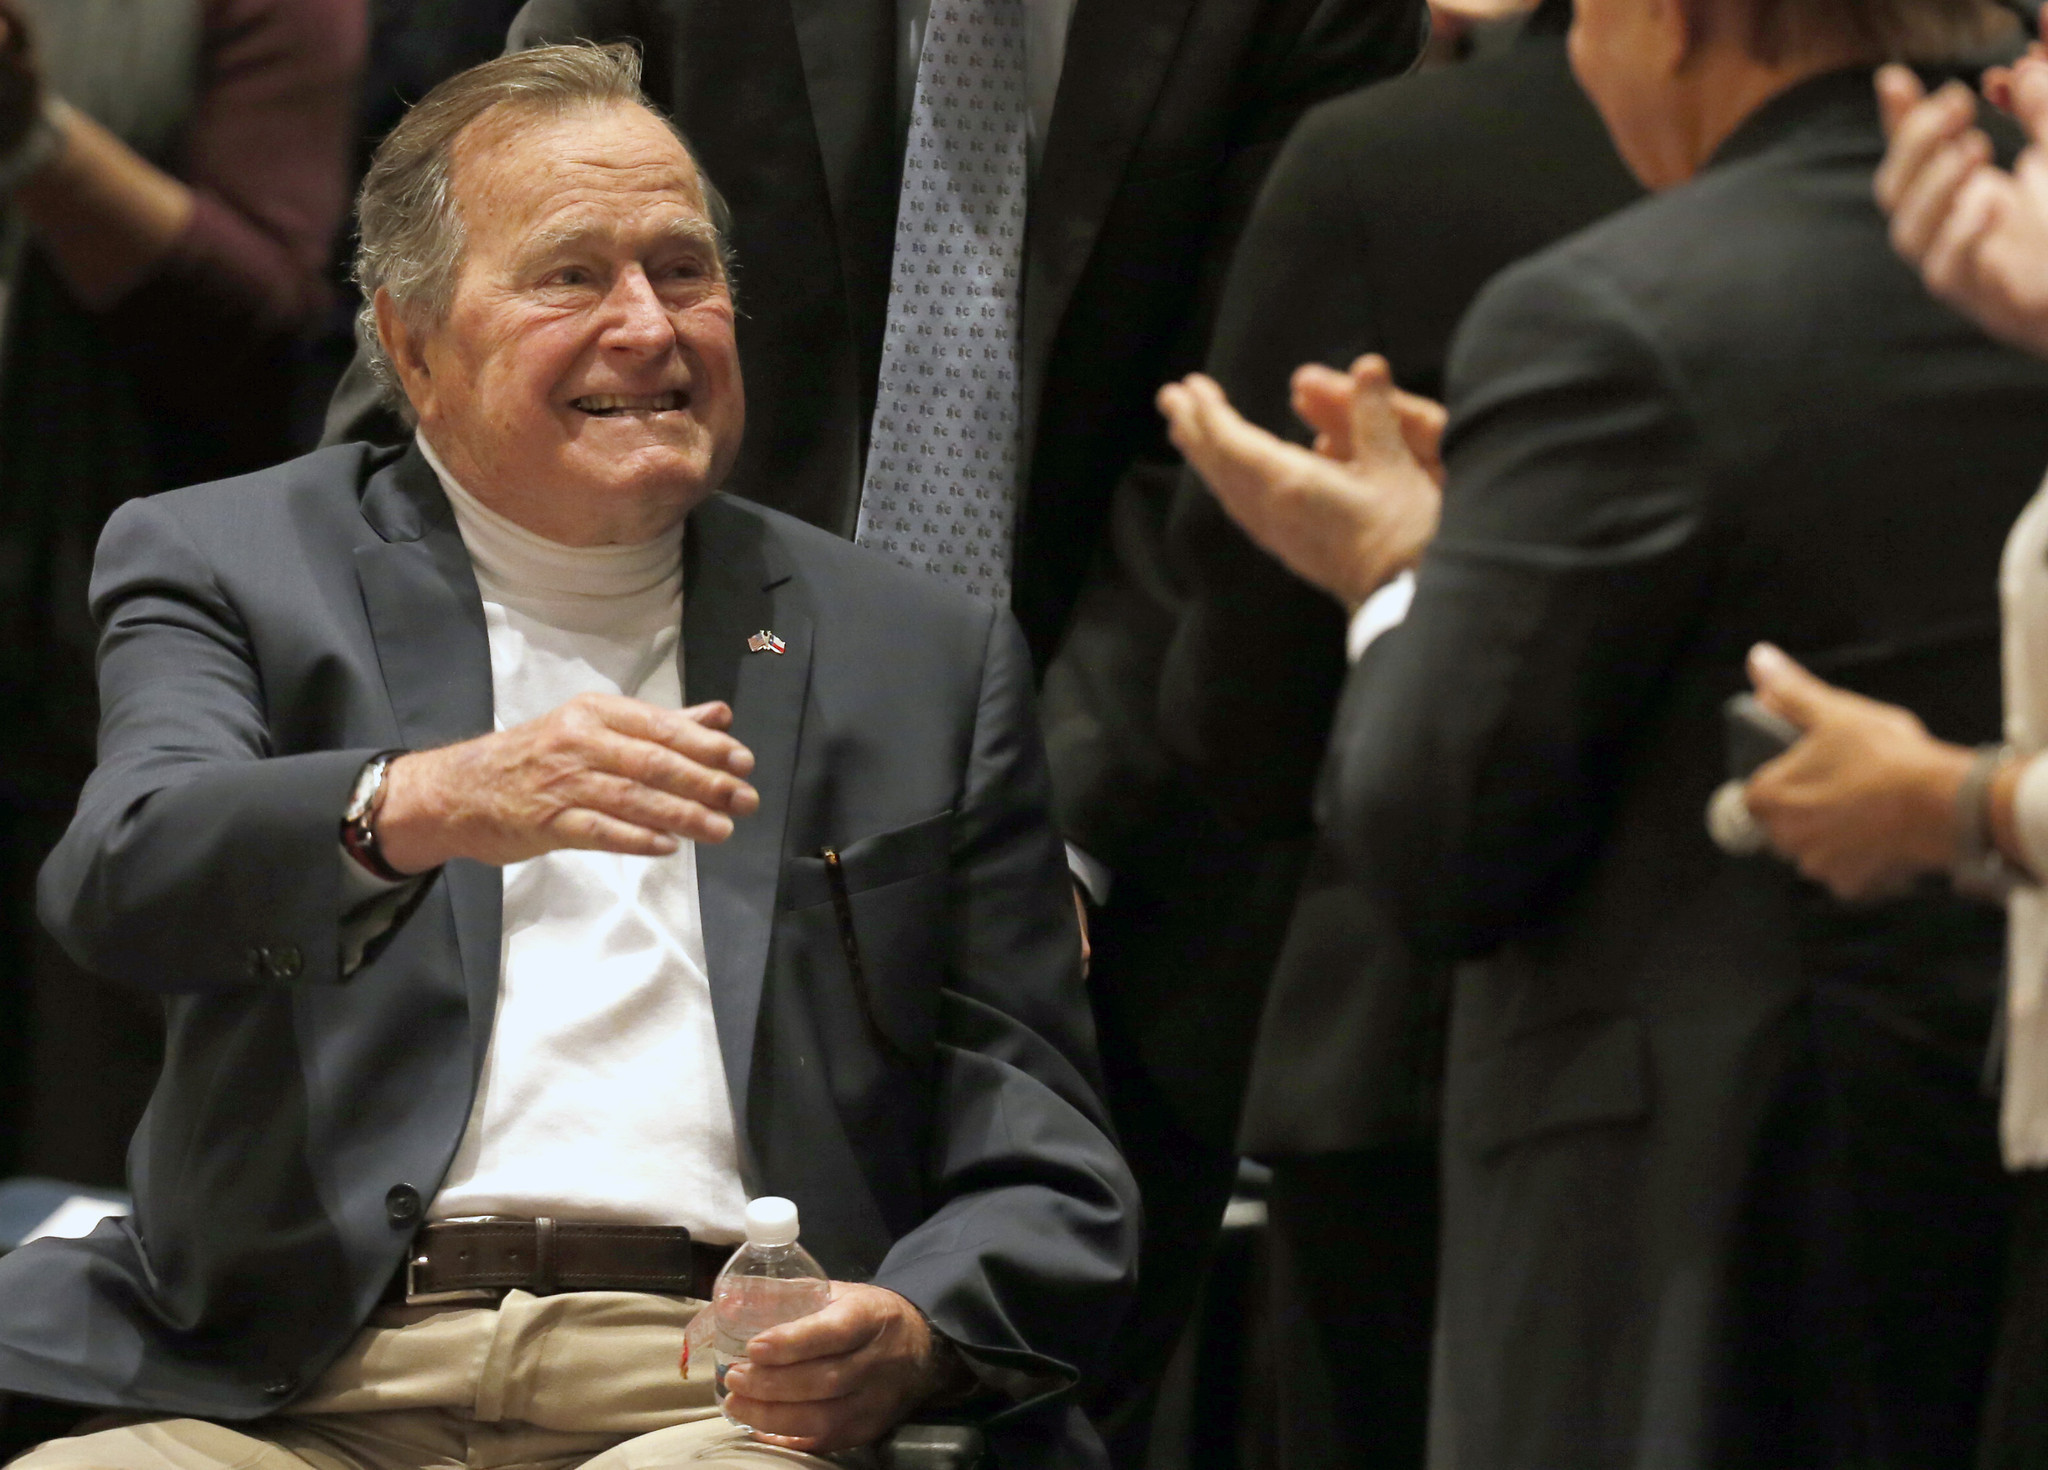 First President Bush Healing Nicely After Fractured Vertebra Over